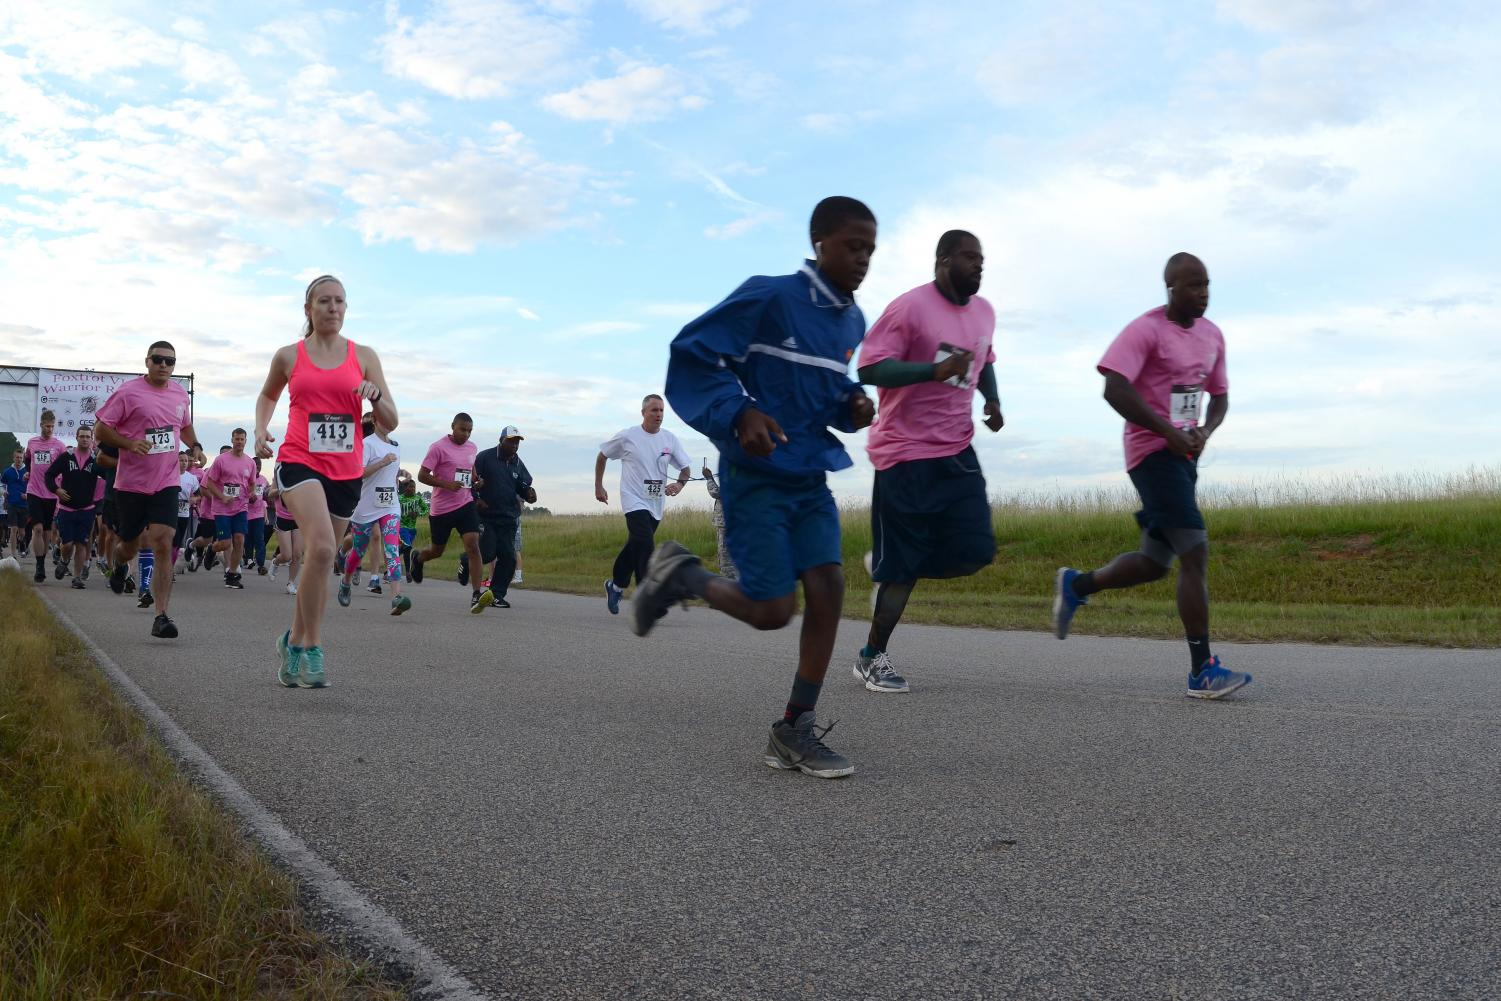 Fundraiser runs are a great way to promote or and raise money for an event or cause.